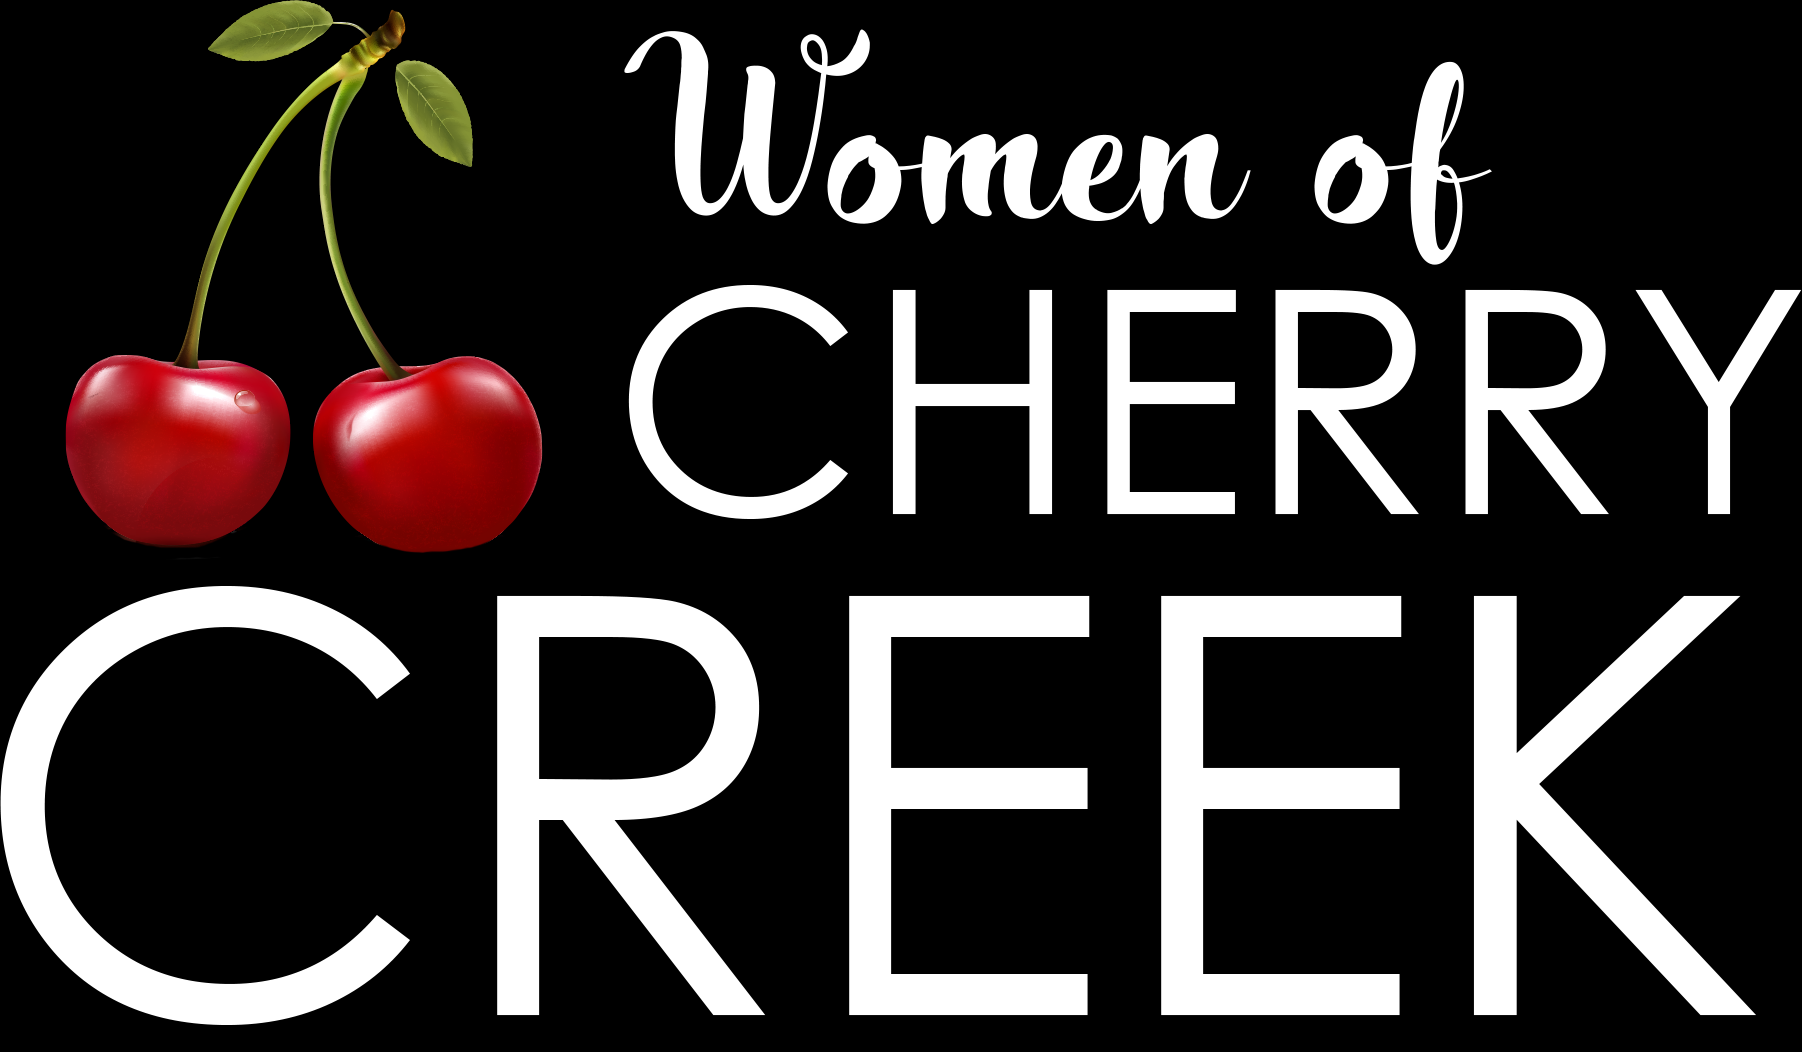 cherry creek black single women Of all the adorable boutiques in cherry creek this is not one of them bought a classic little black dress find more women's clothing near inspyre boutique.